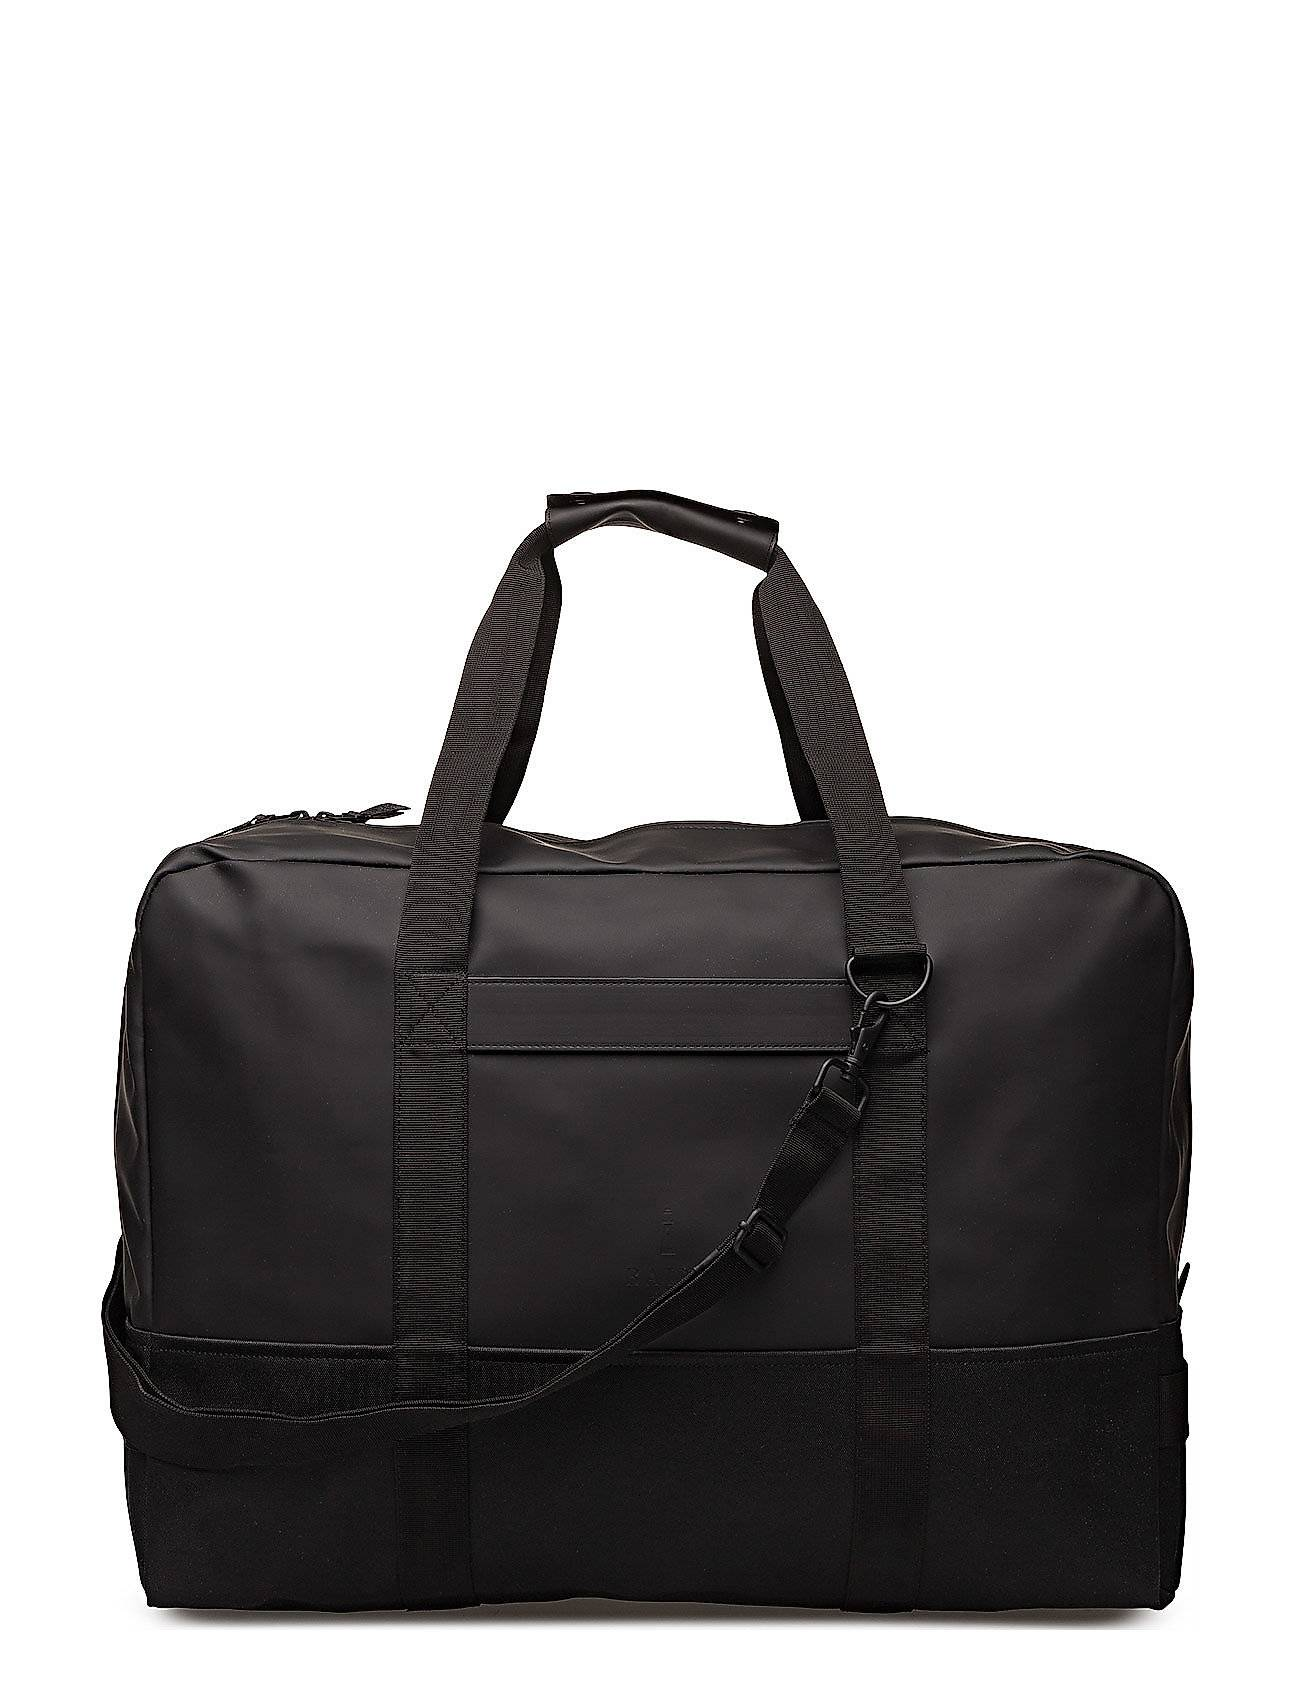 Rains Luggage Bag